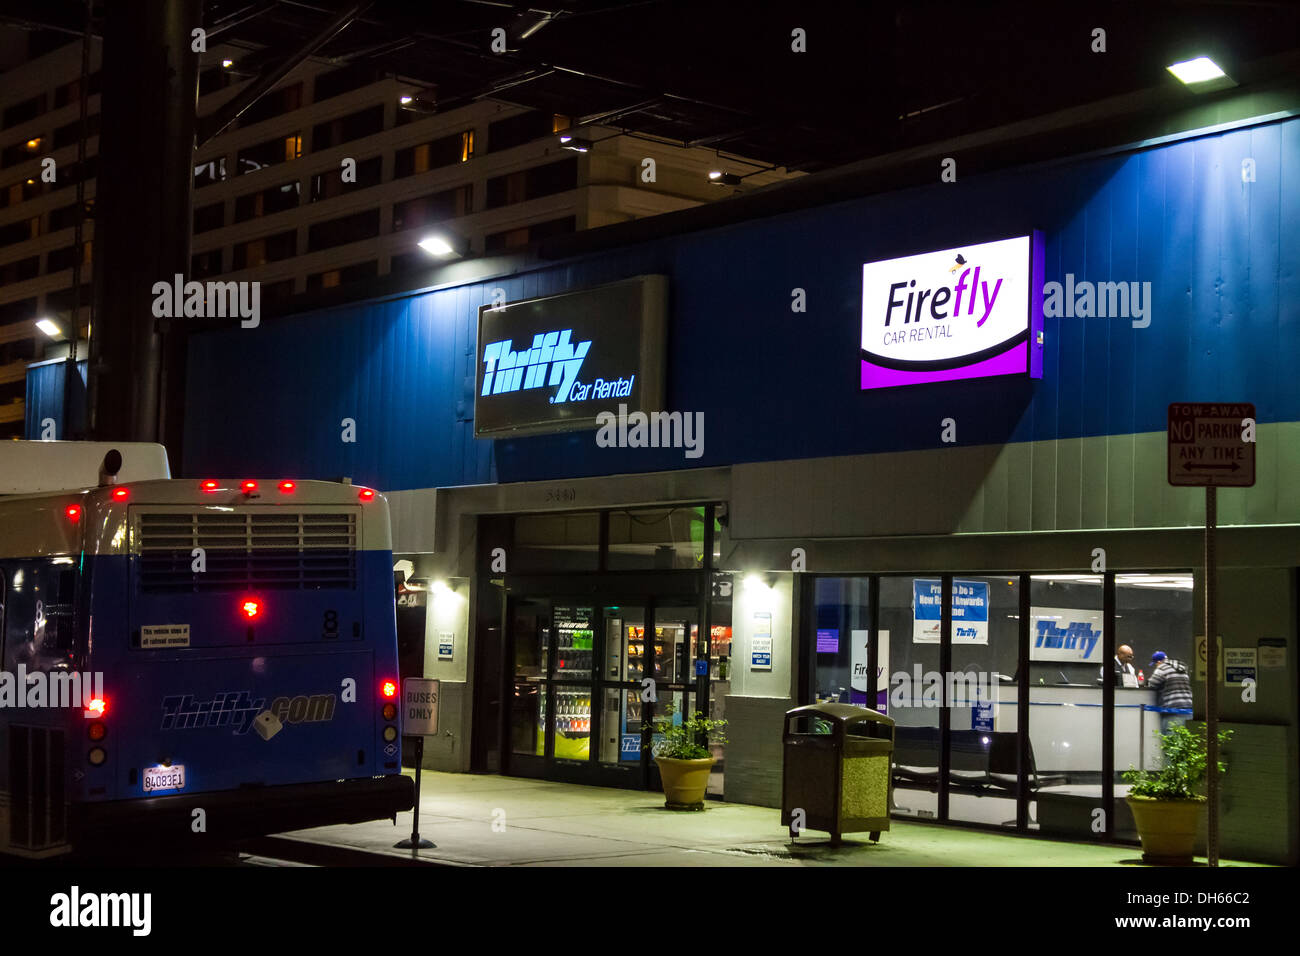 A Thrifty Car Rental and Firefly car rental offices at LAX Los Angeles International Airport - Stock Image